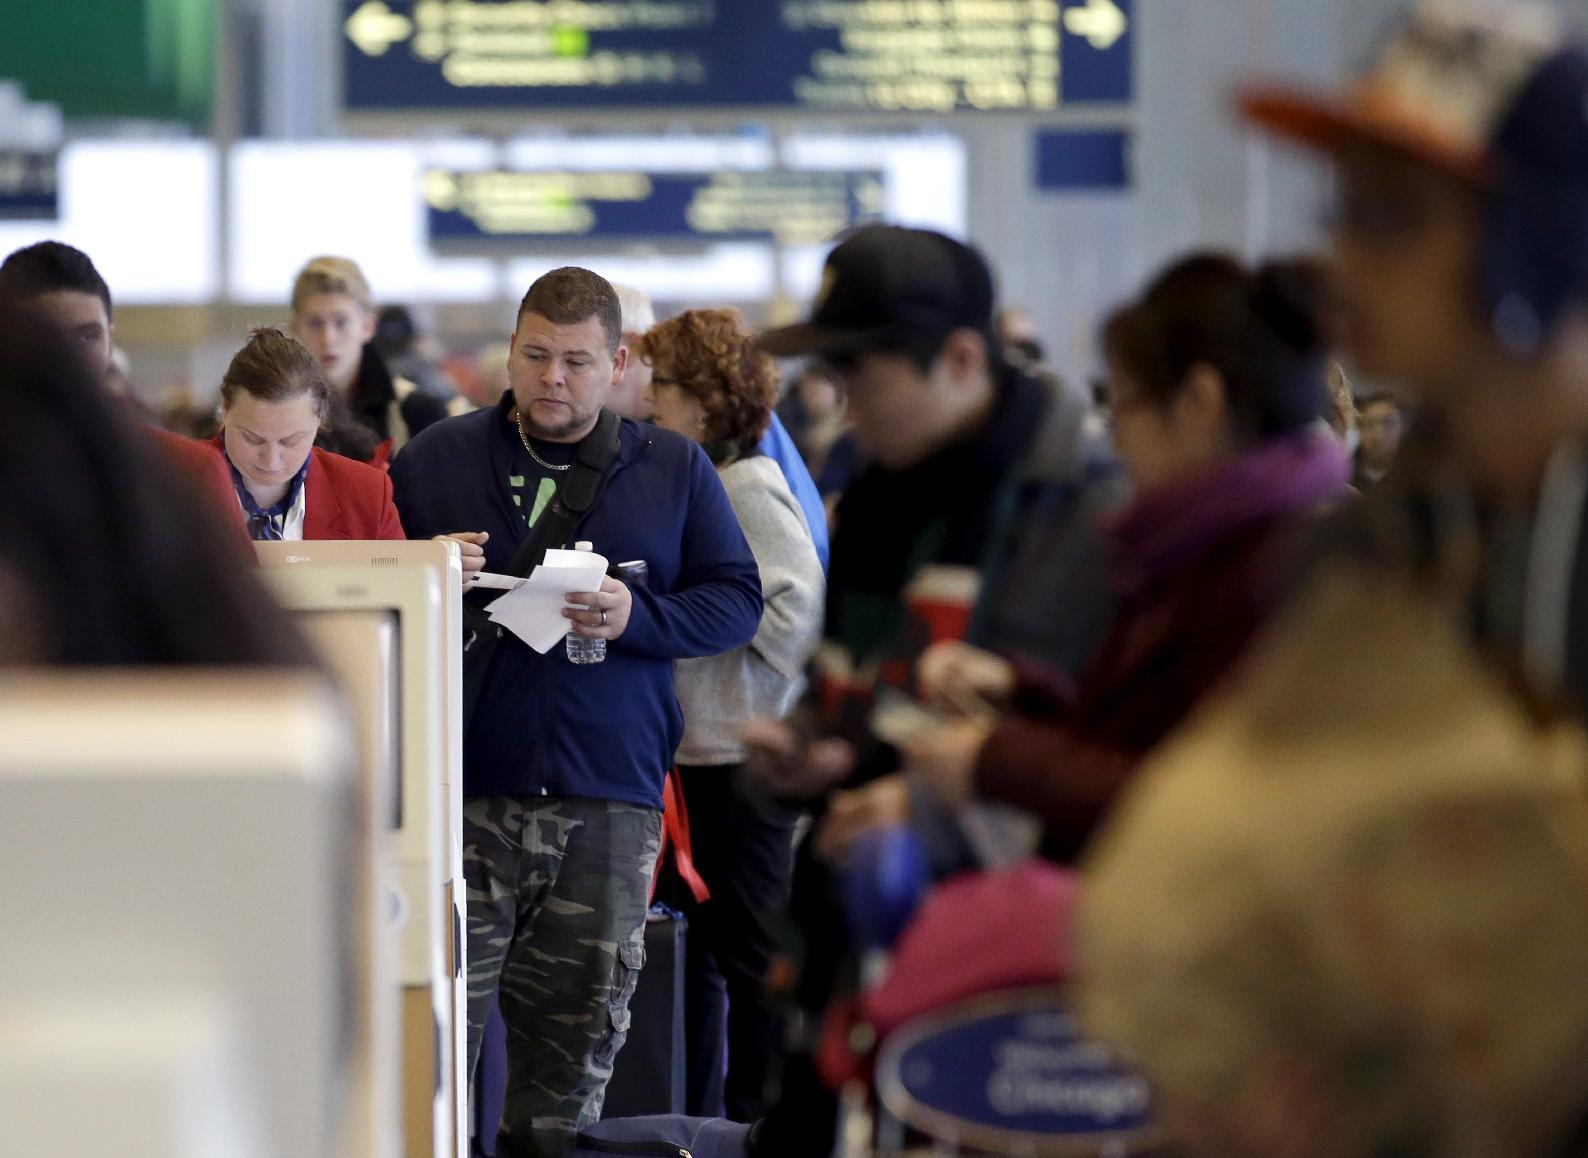 Weather, flights aid post-Thanksgiving travel efforts